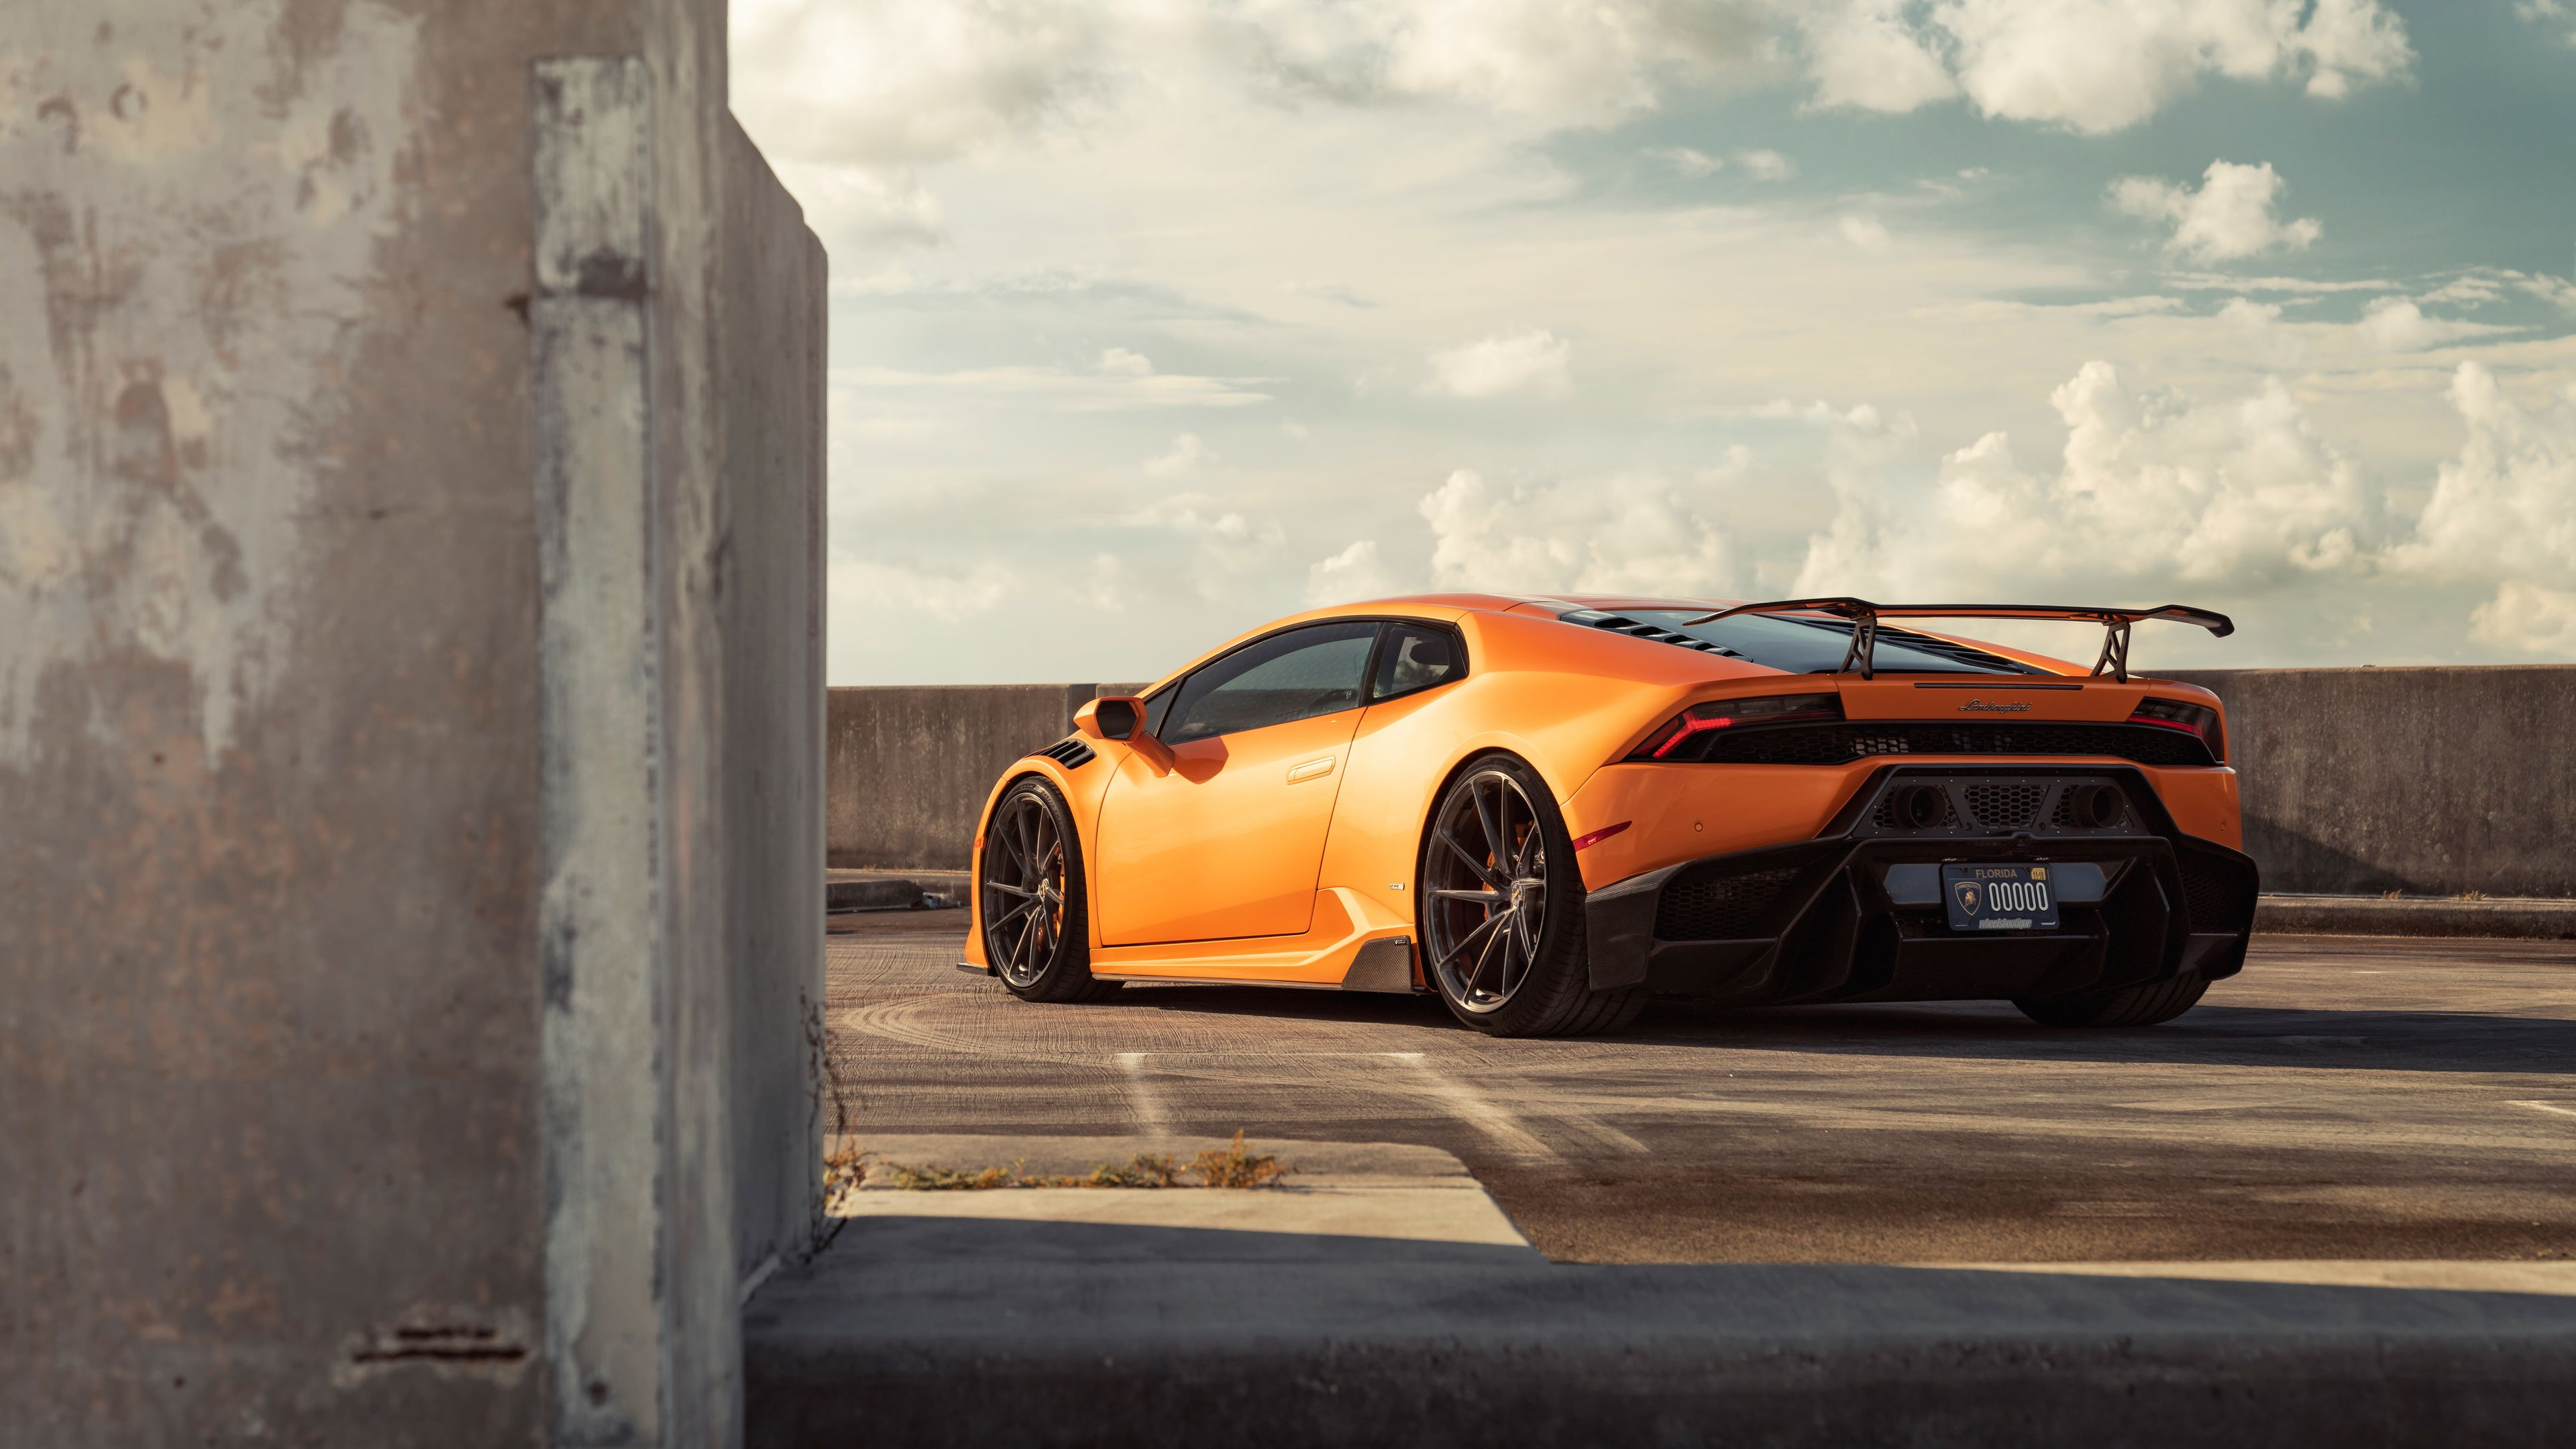 Orange Lamborghini Huracan Rear 4k Lamborghini Wallpapers Lamborghini Huracan Wallpapers Hd Wallpapers Cars Wa Lamborghini Huracan Super Cars Car Wallpapers